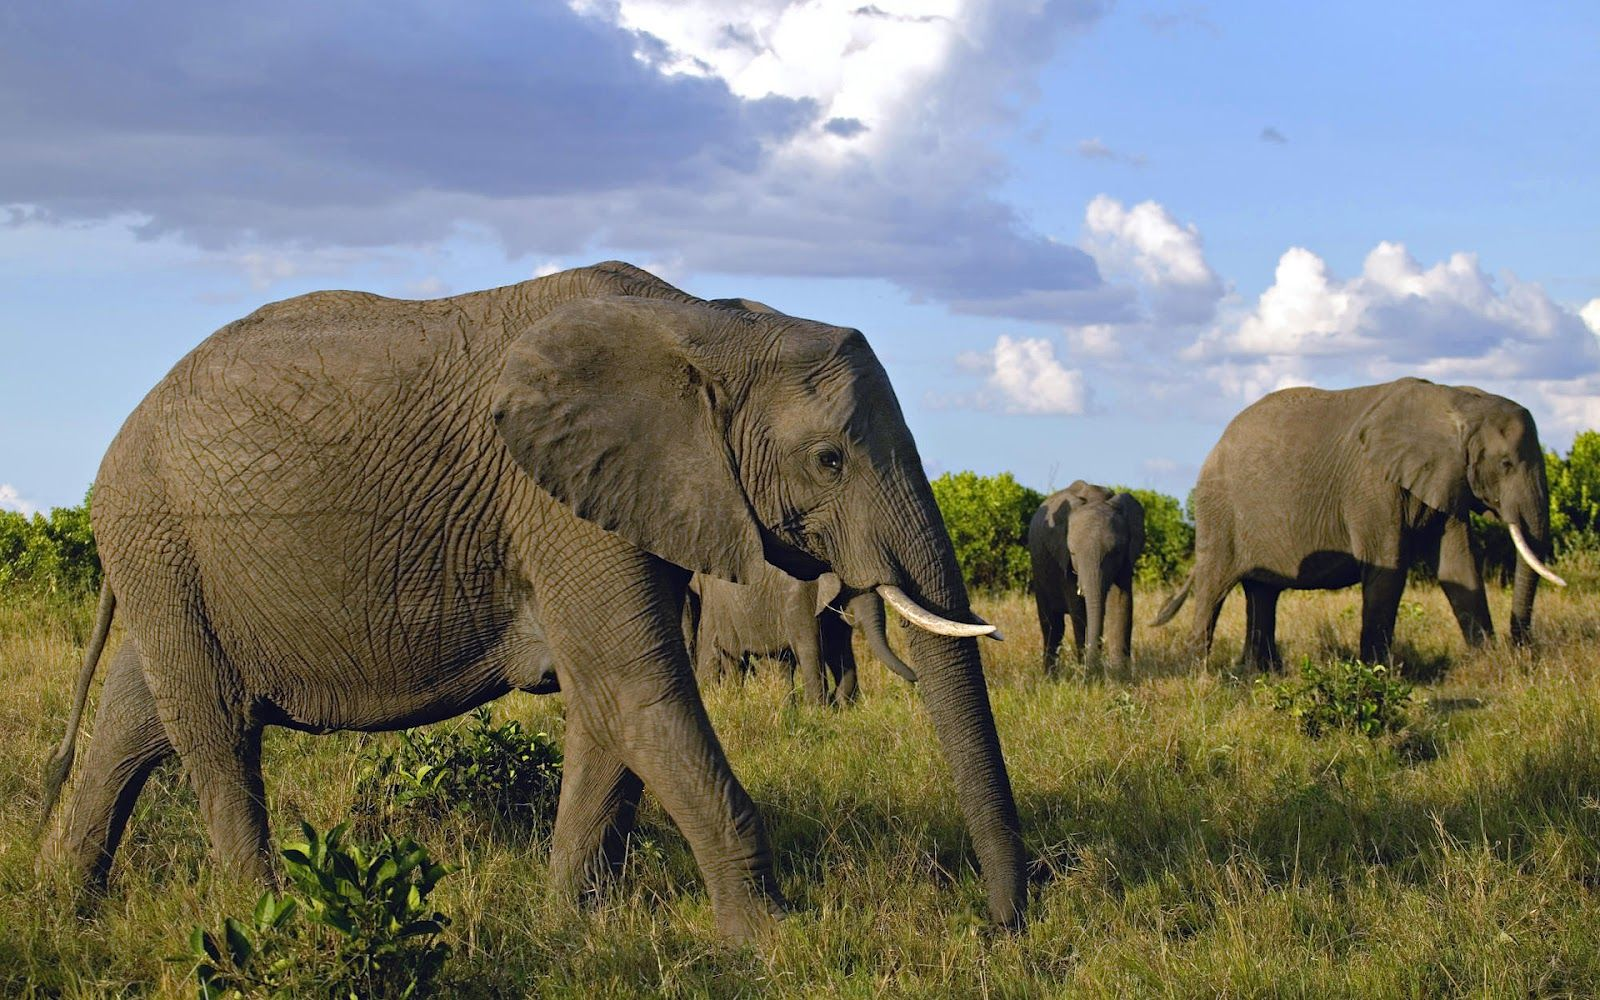 elephant wallpaper elephant wallpapers elephant hd wallpapers 1440